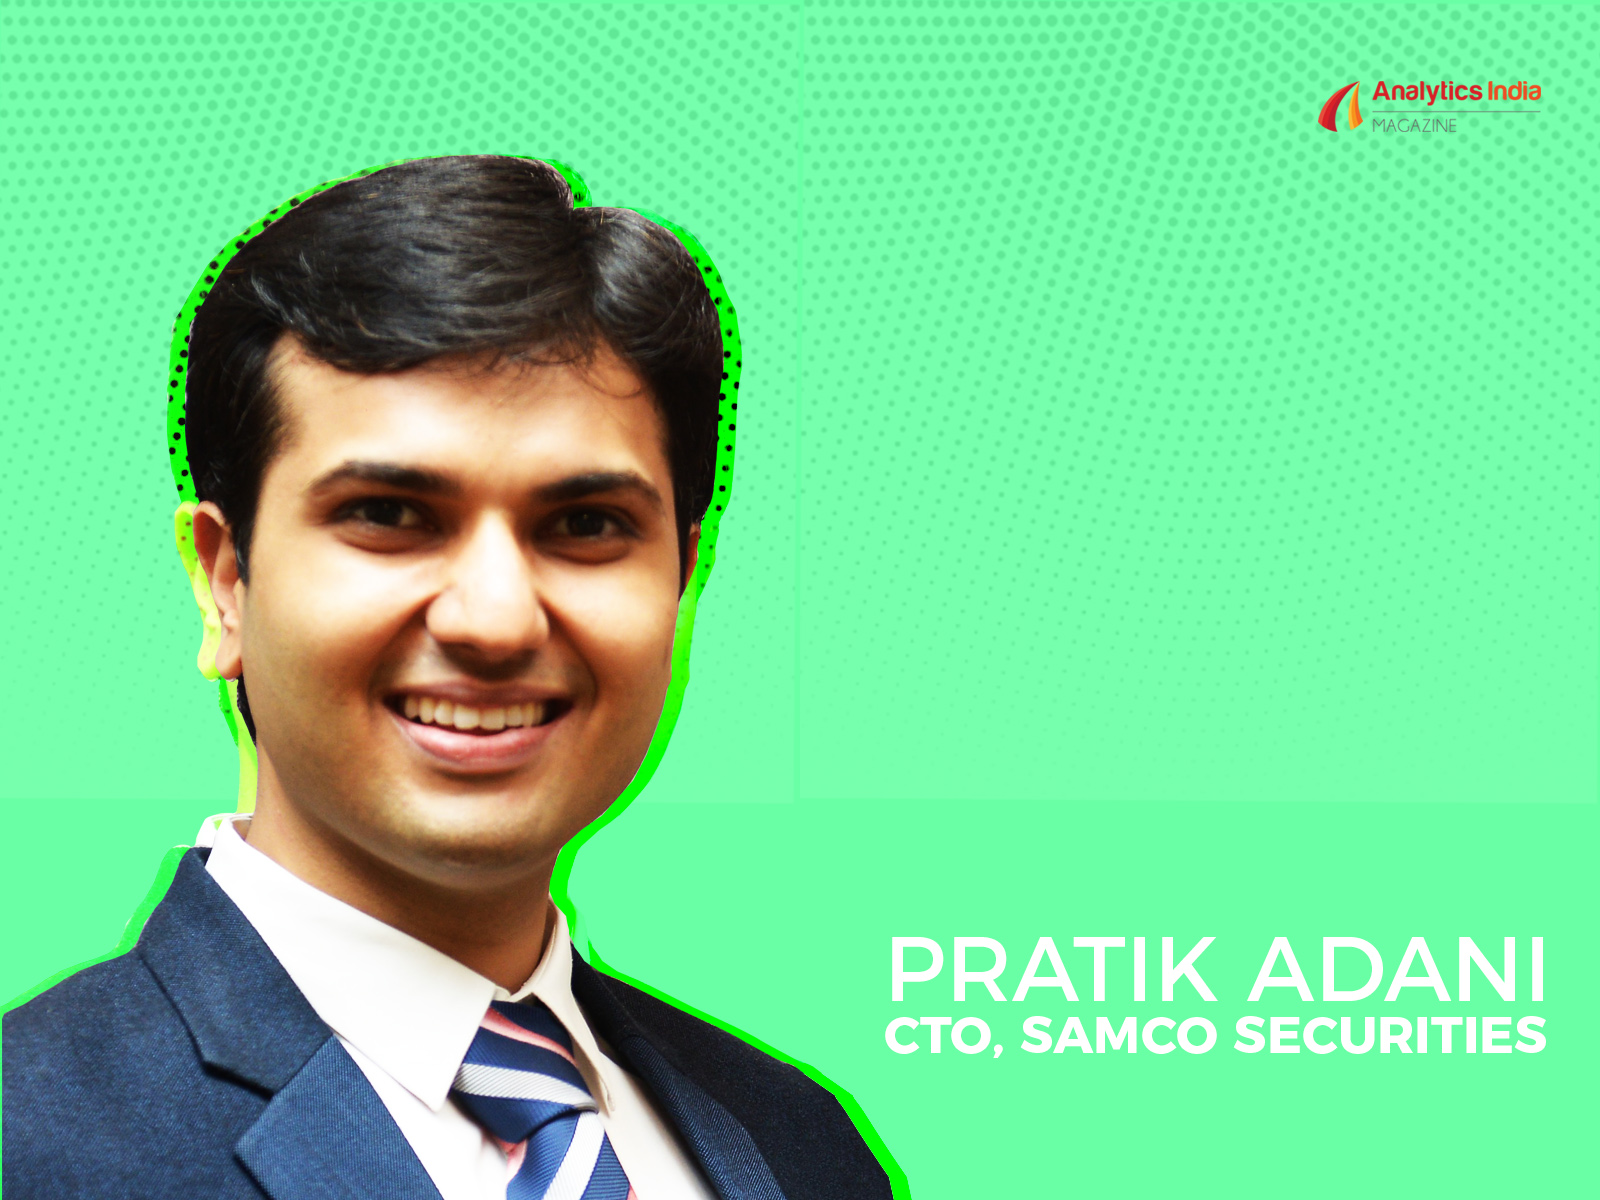 Pratik Adani CTO SAMCO Securities